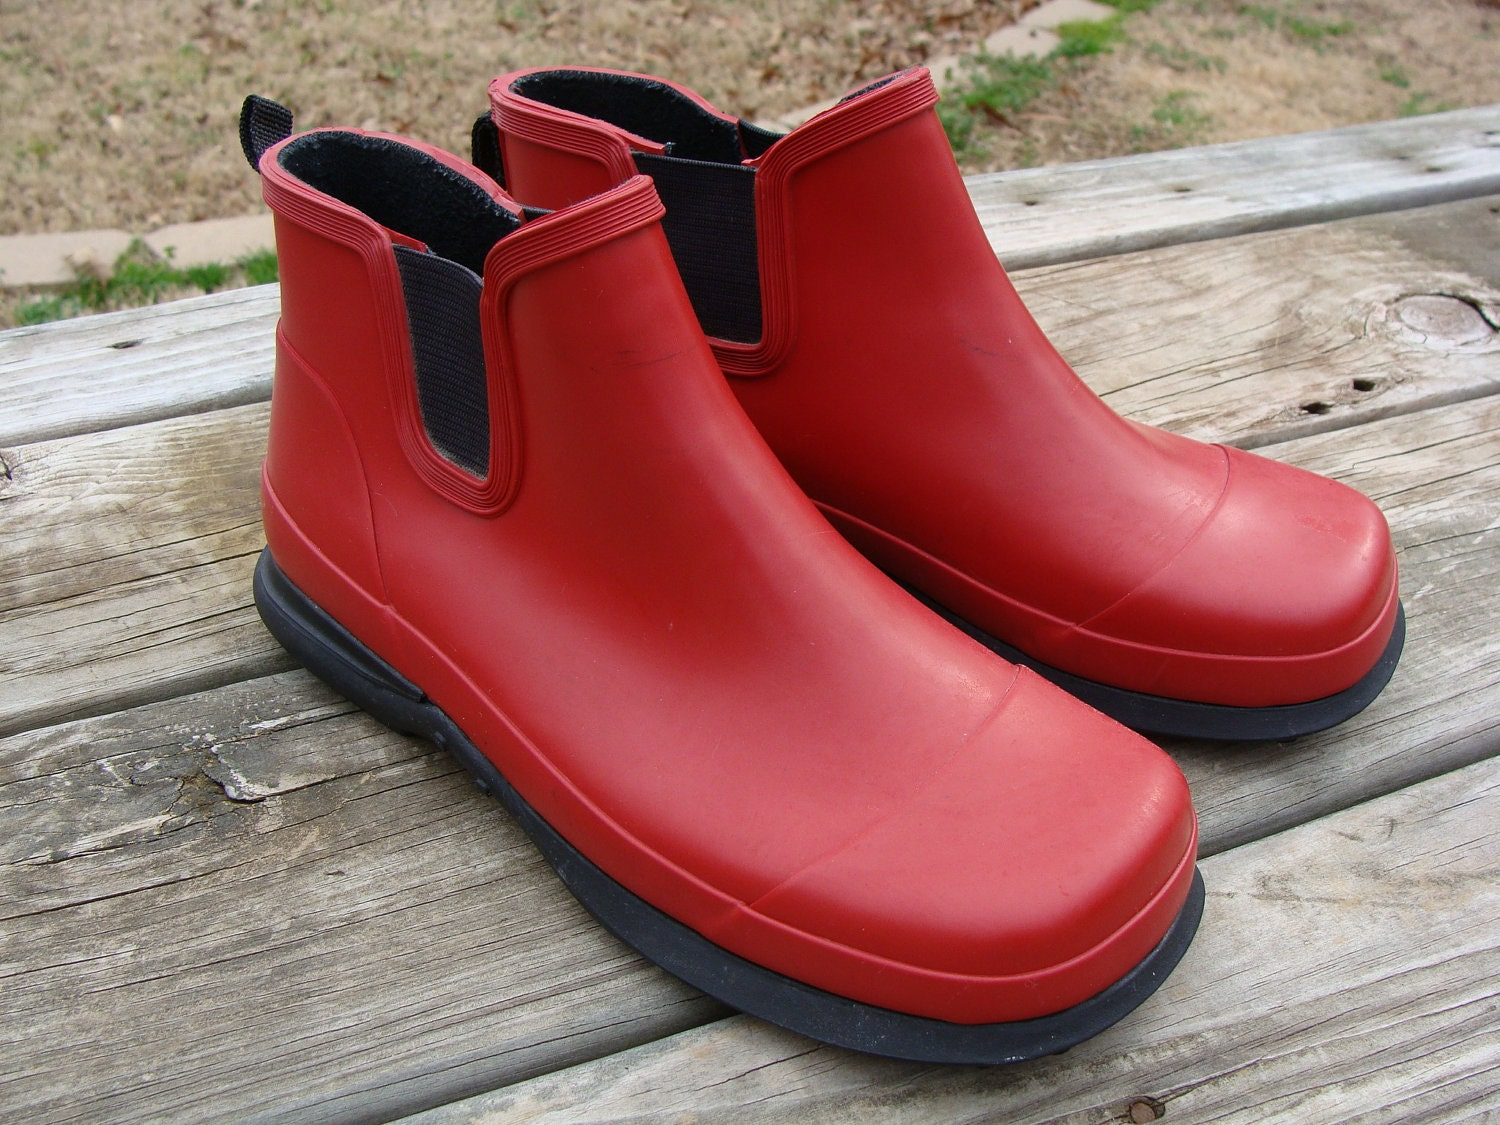 SALE Eddie Bauer Rain Boots Womens Ladies size 7 Red by bethage